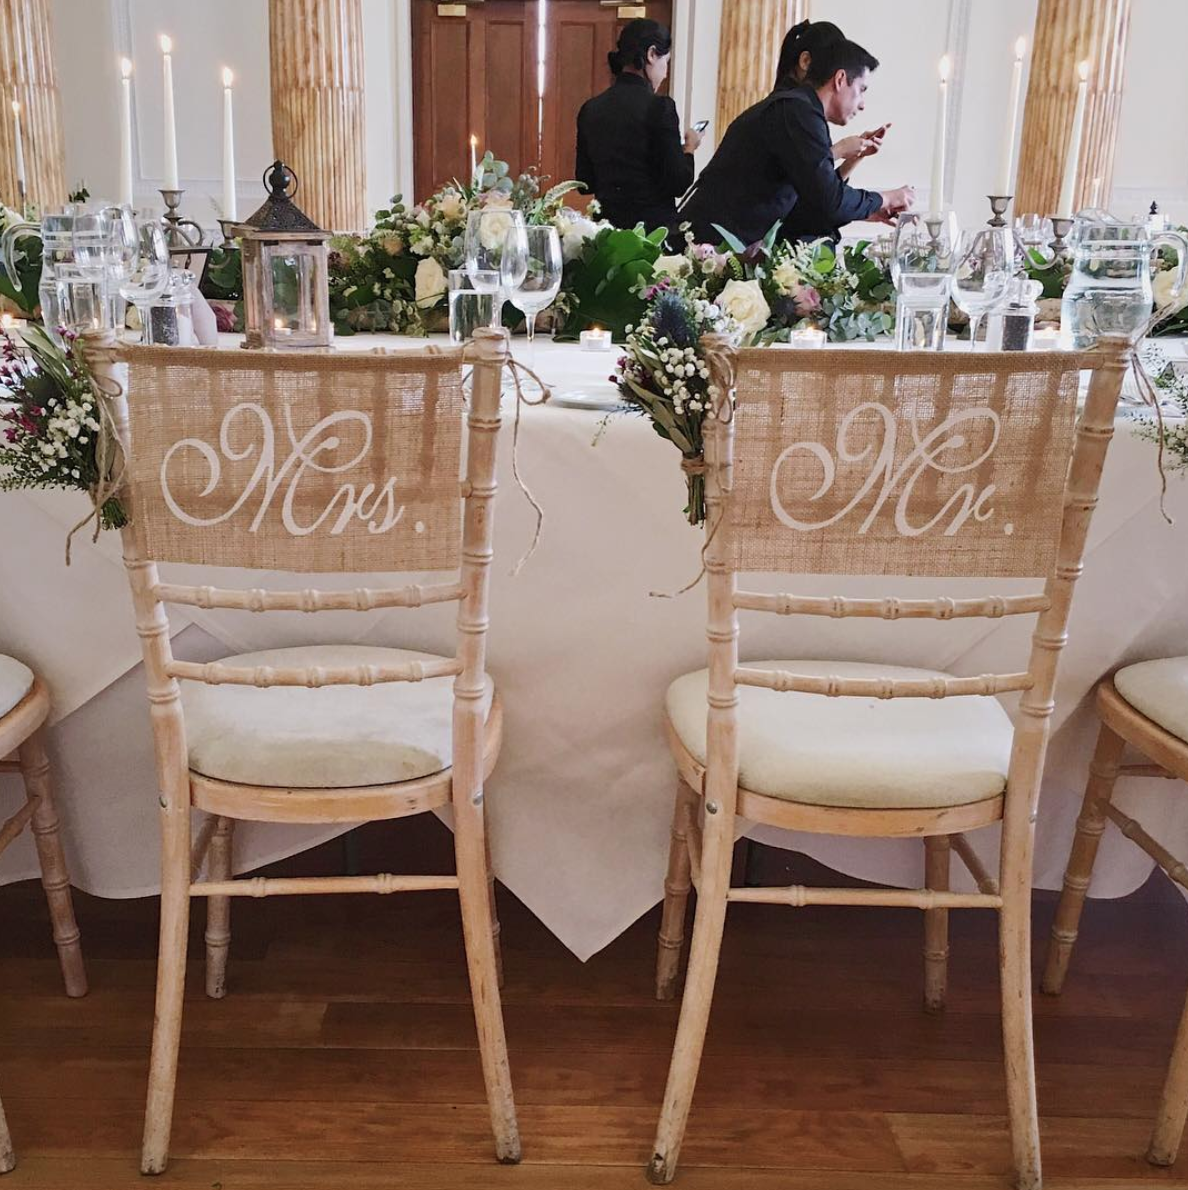 Lulabelle Wedding Floristy and Styling Bridge and Groom Chairs.png